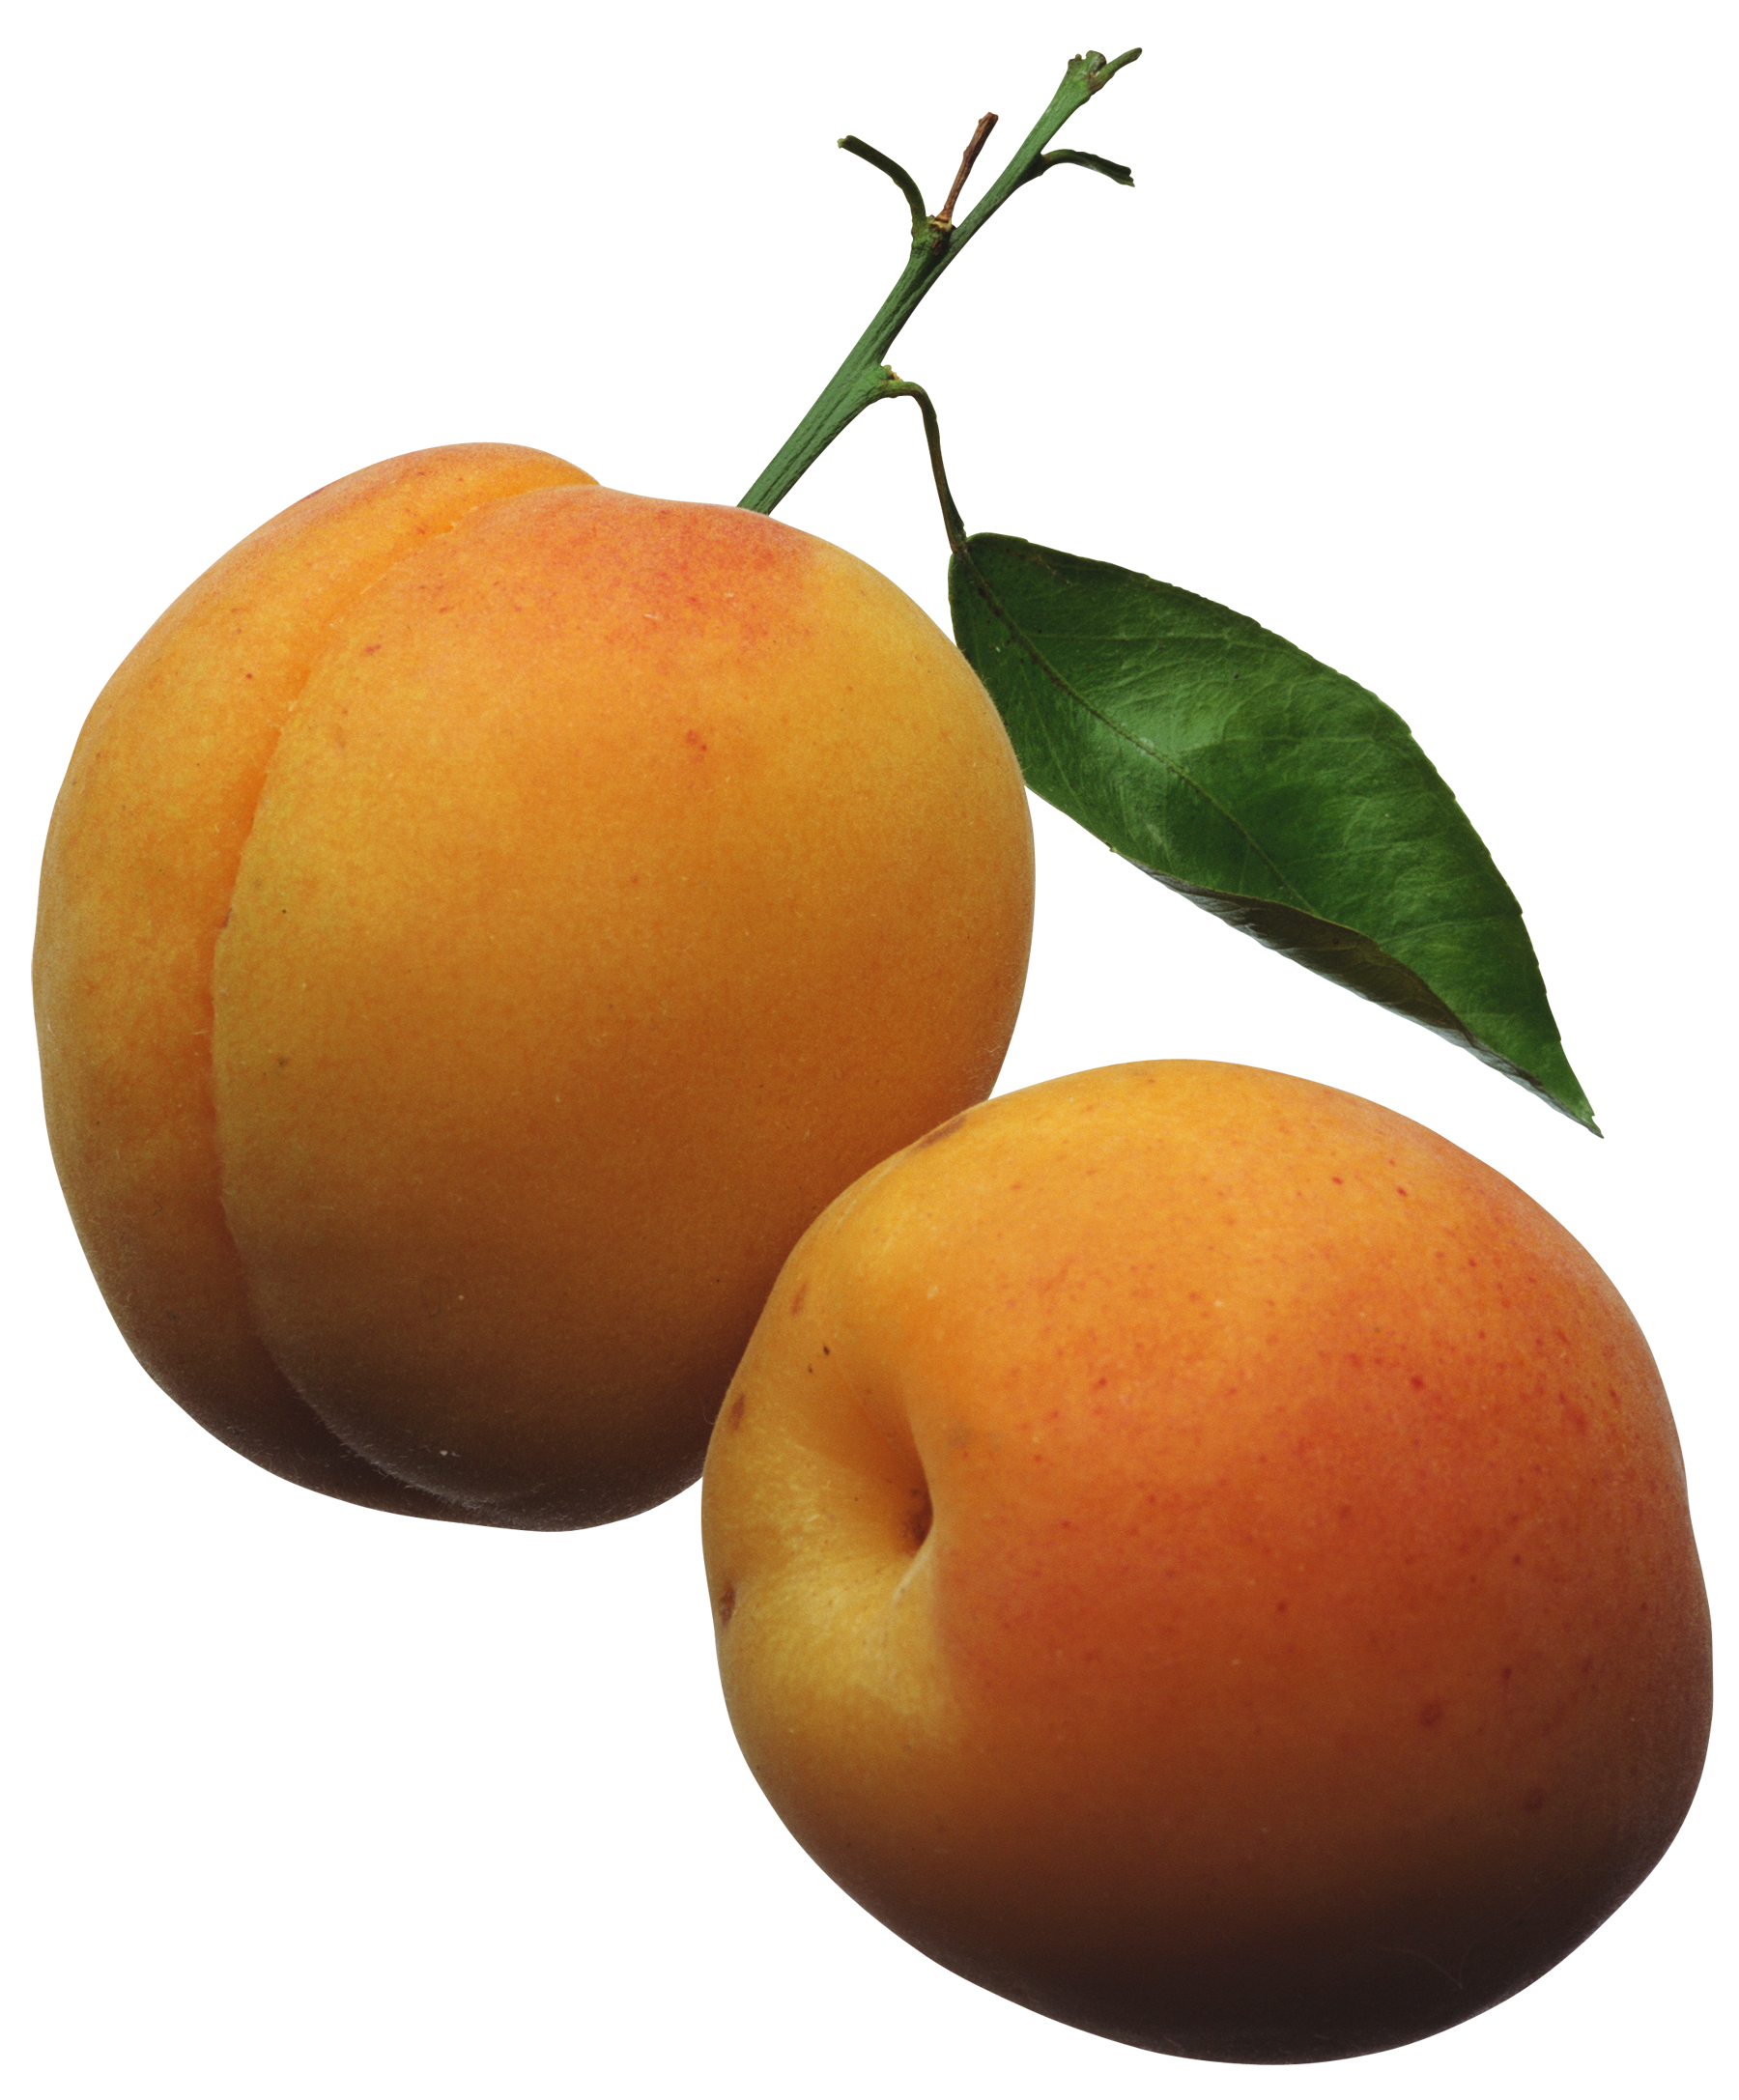 Fruit clipart food item. Apricots png picture clippart